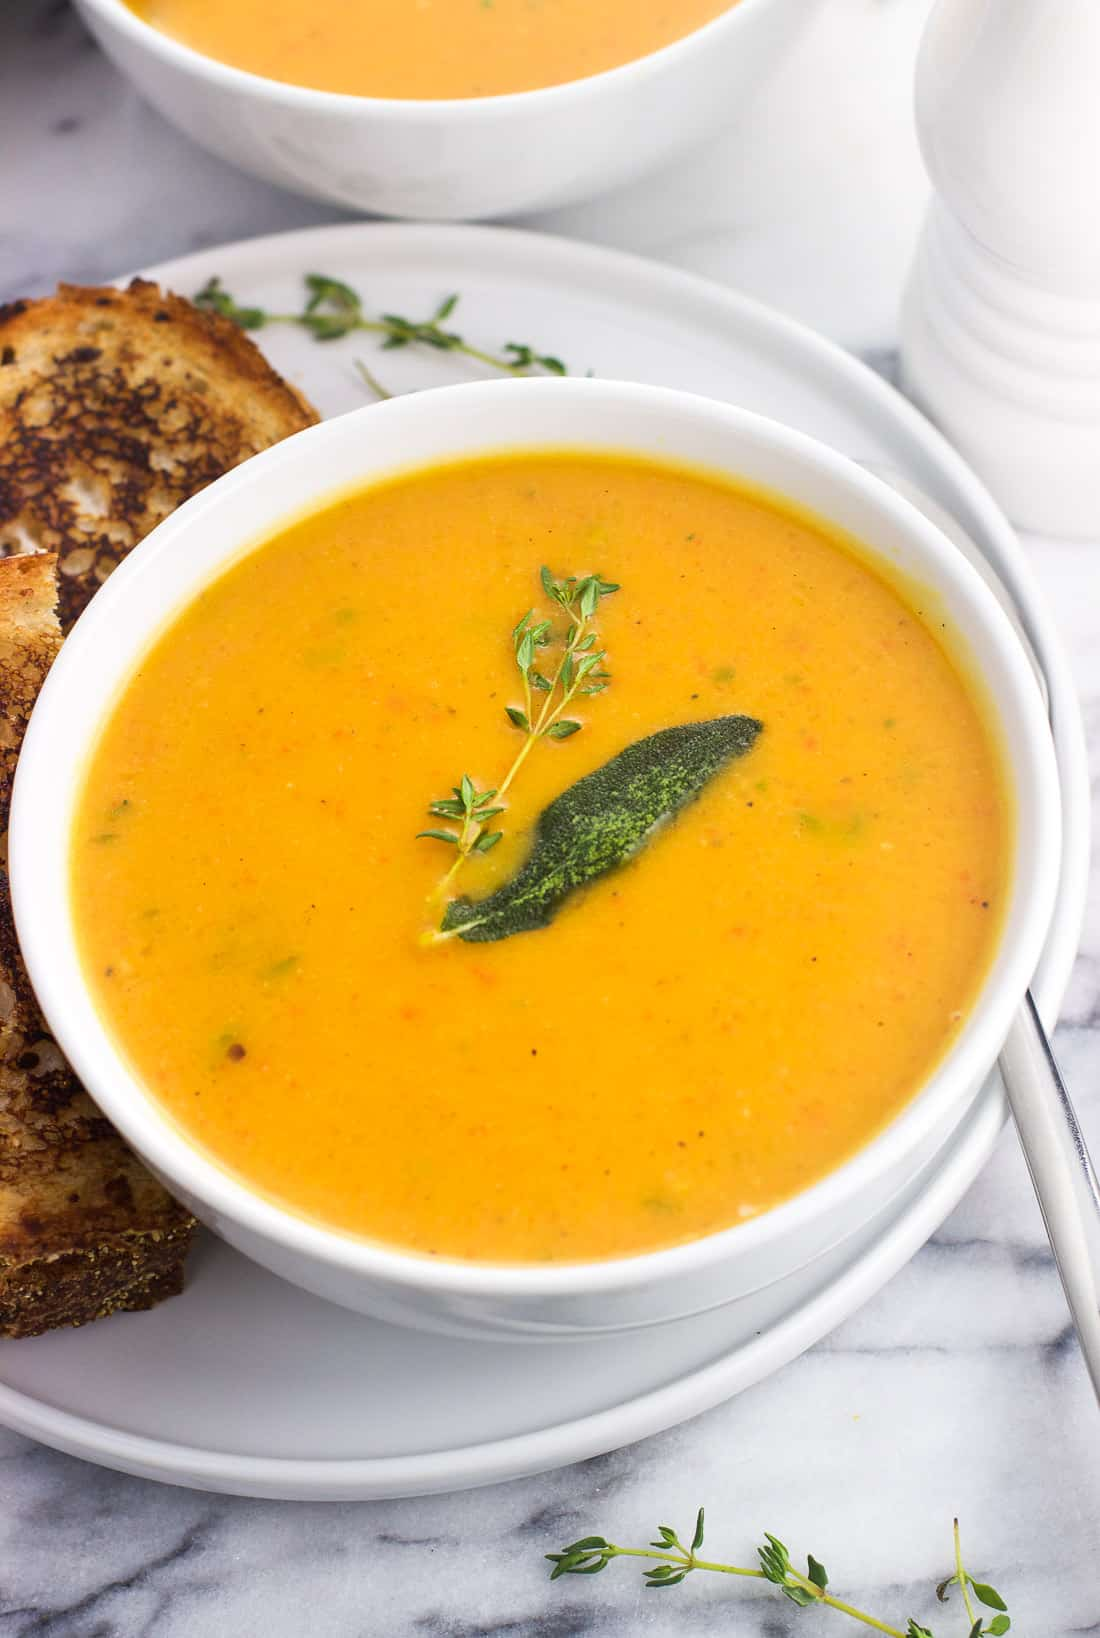 A bowl of roasted butternut squash soup garnished with a sprig of thyme and a sage leaf, served next to a grilled cheese sandwich